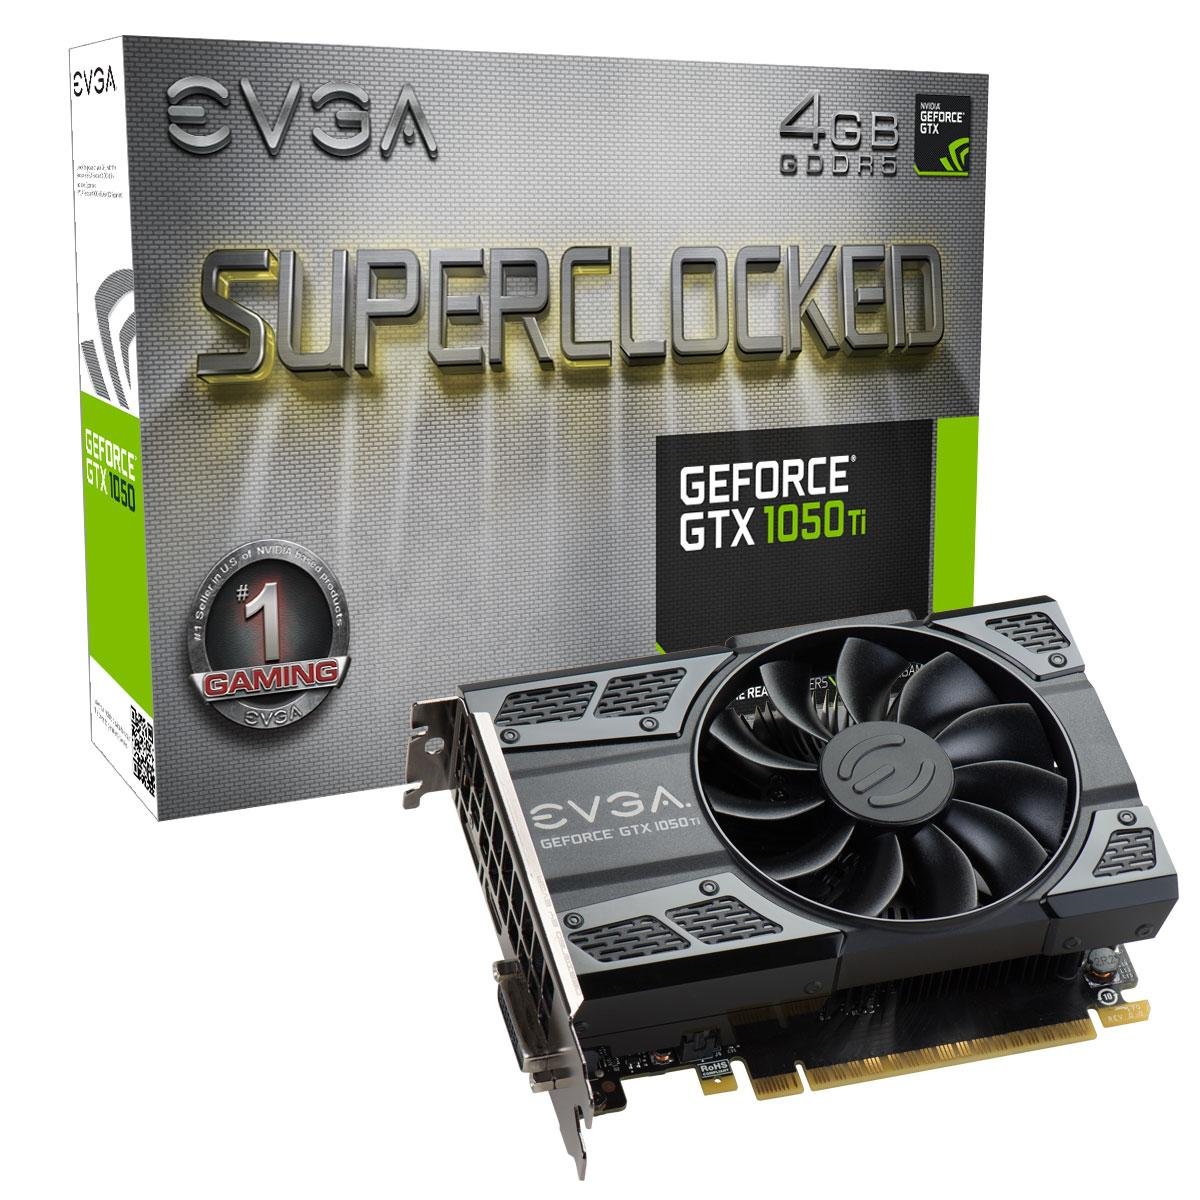 Видео карта  EVGA GeForce GTX 1050 Ti SC GAMING 04G-P4-6253-KR